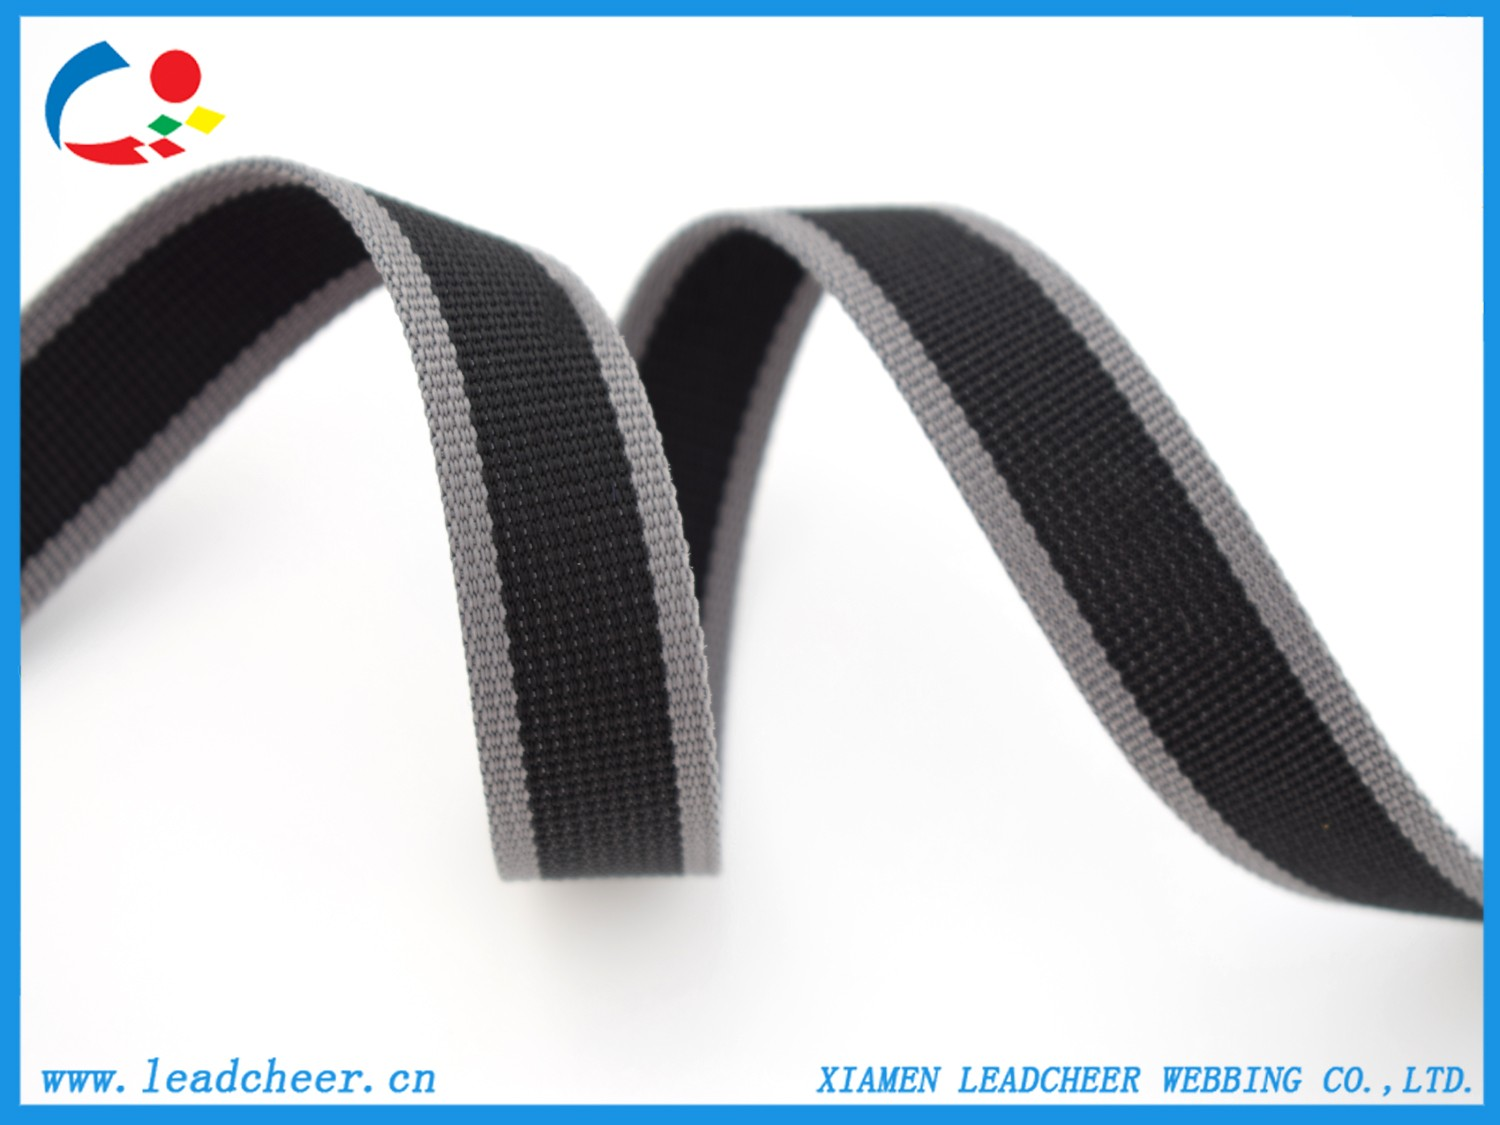 High quality Pet Belt PP Webbing Quotes,China Pet Belt PP Webbing Factory,Pet Belt PP Webbing Purchasing